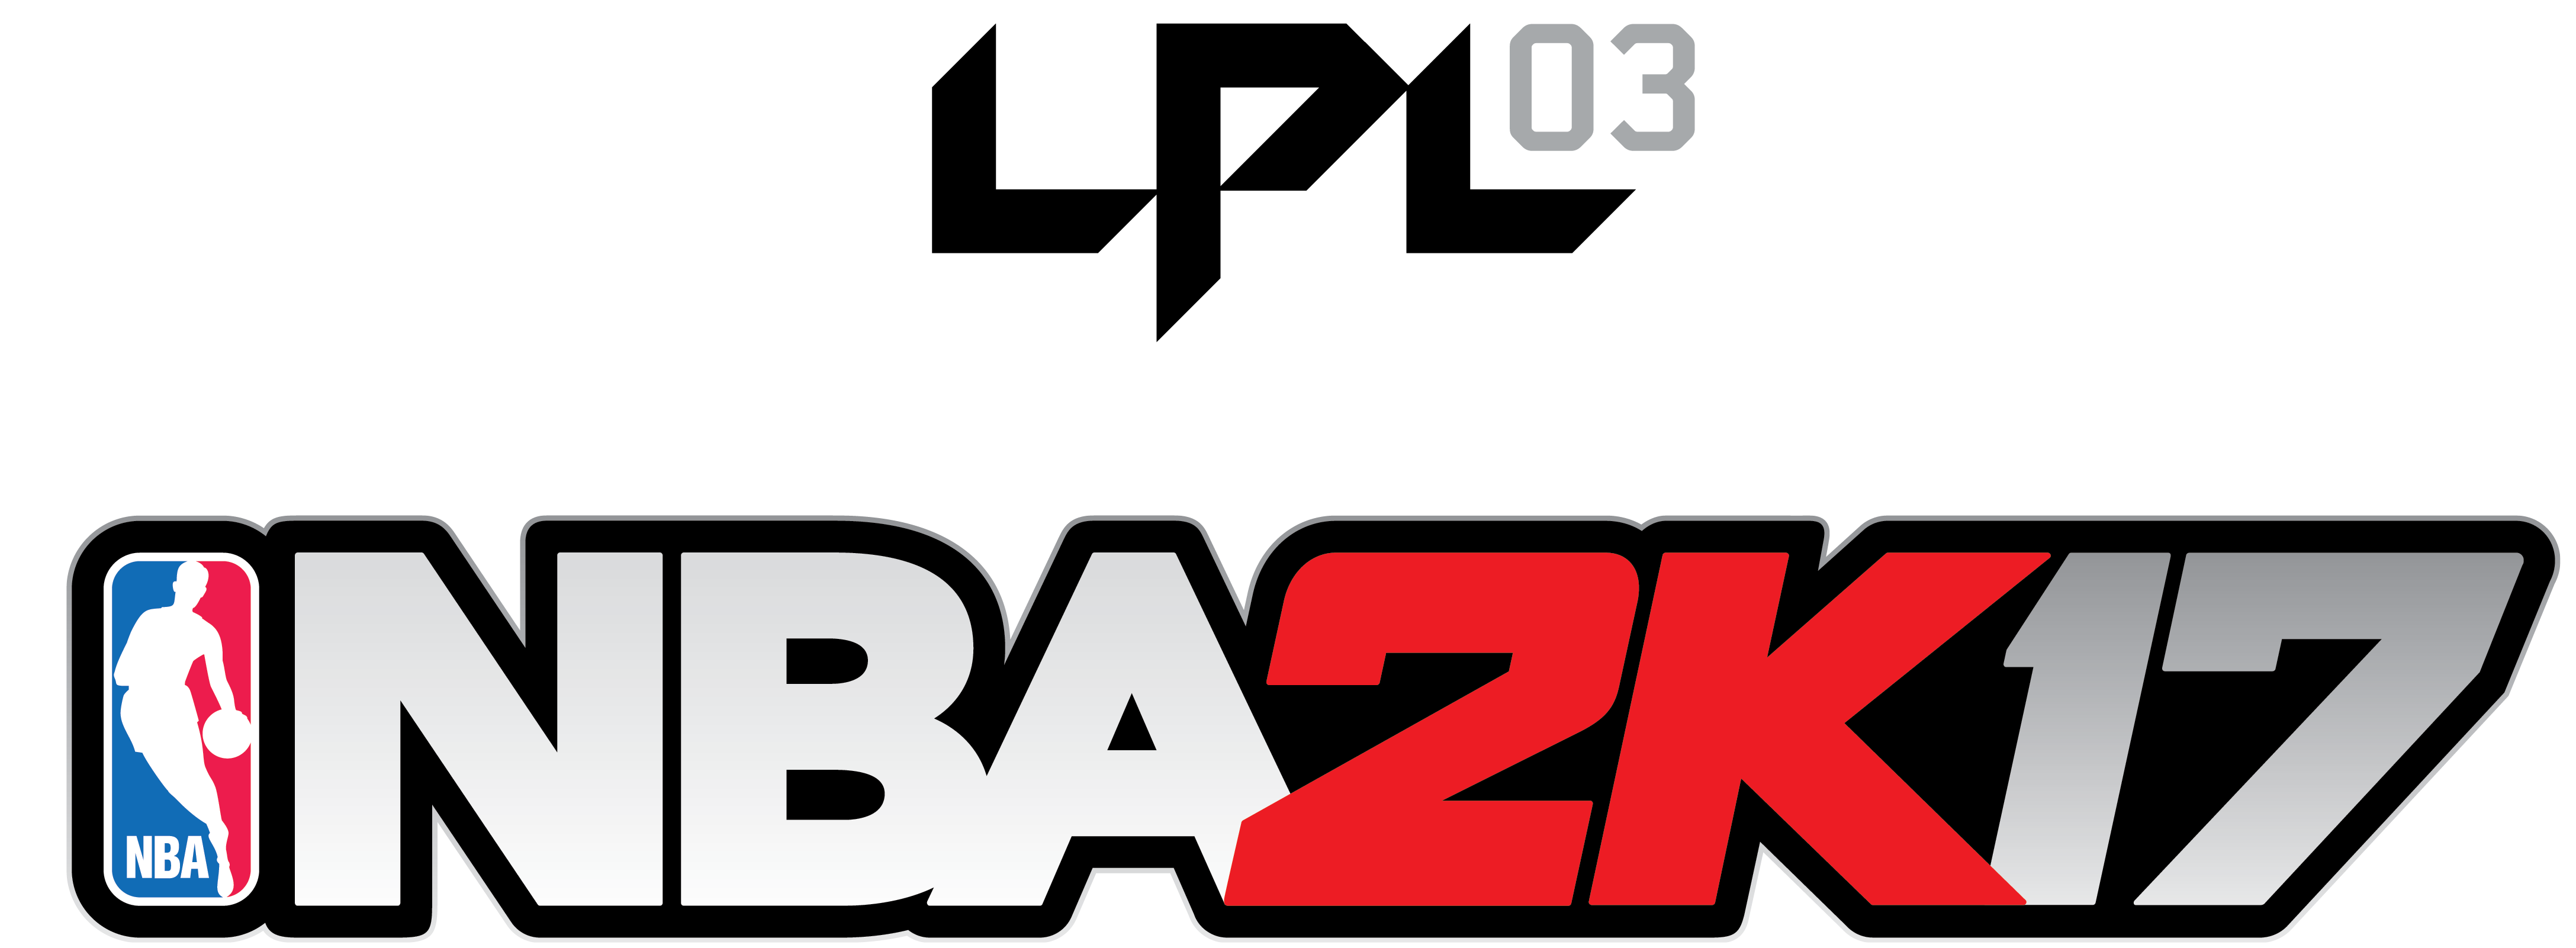 Nba 2k17 Logo Png (108+ images in Collection) Page 1.